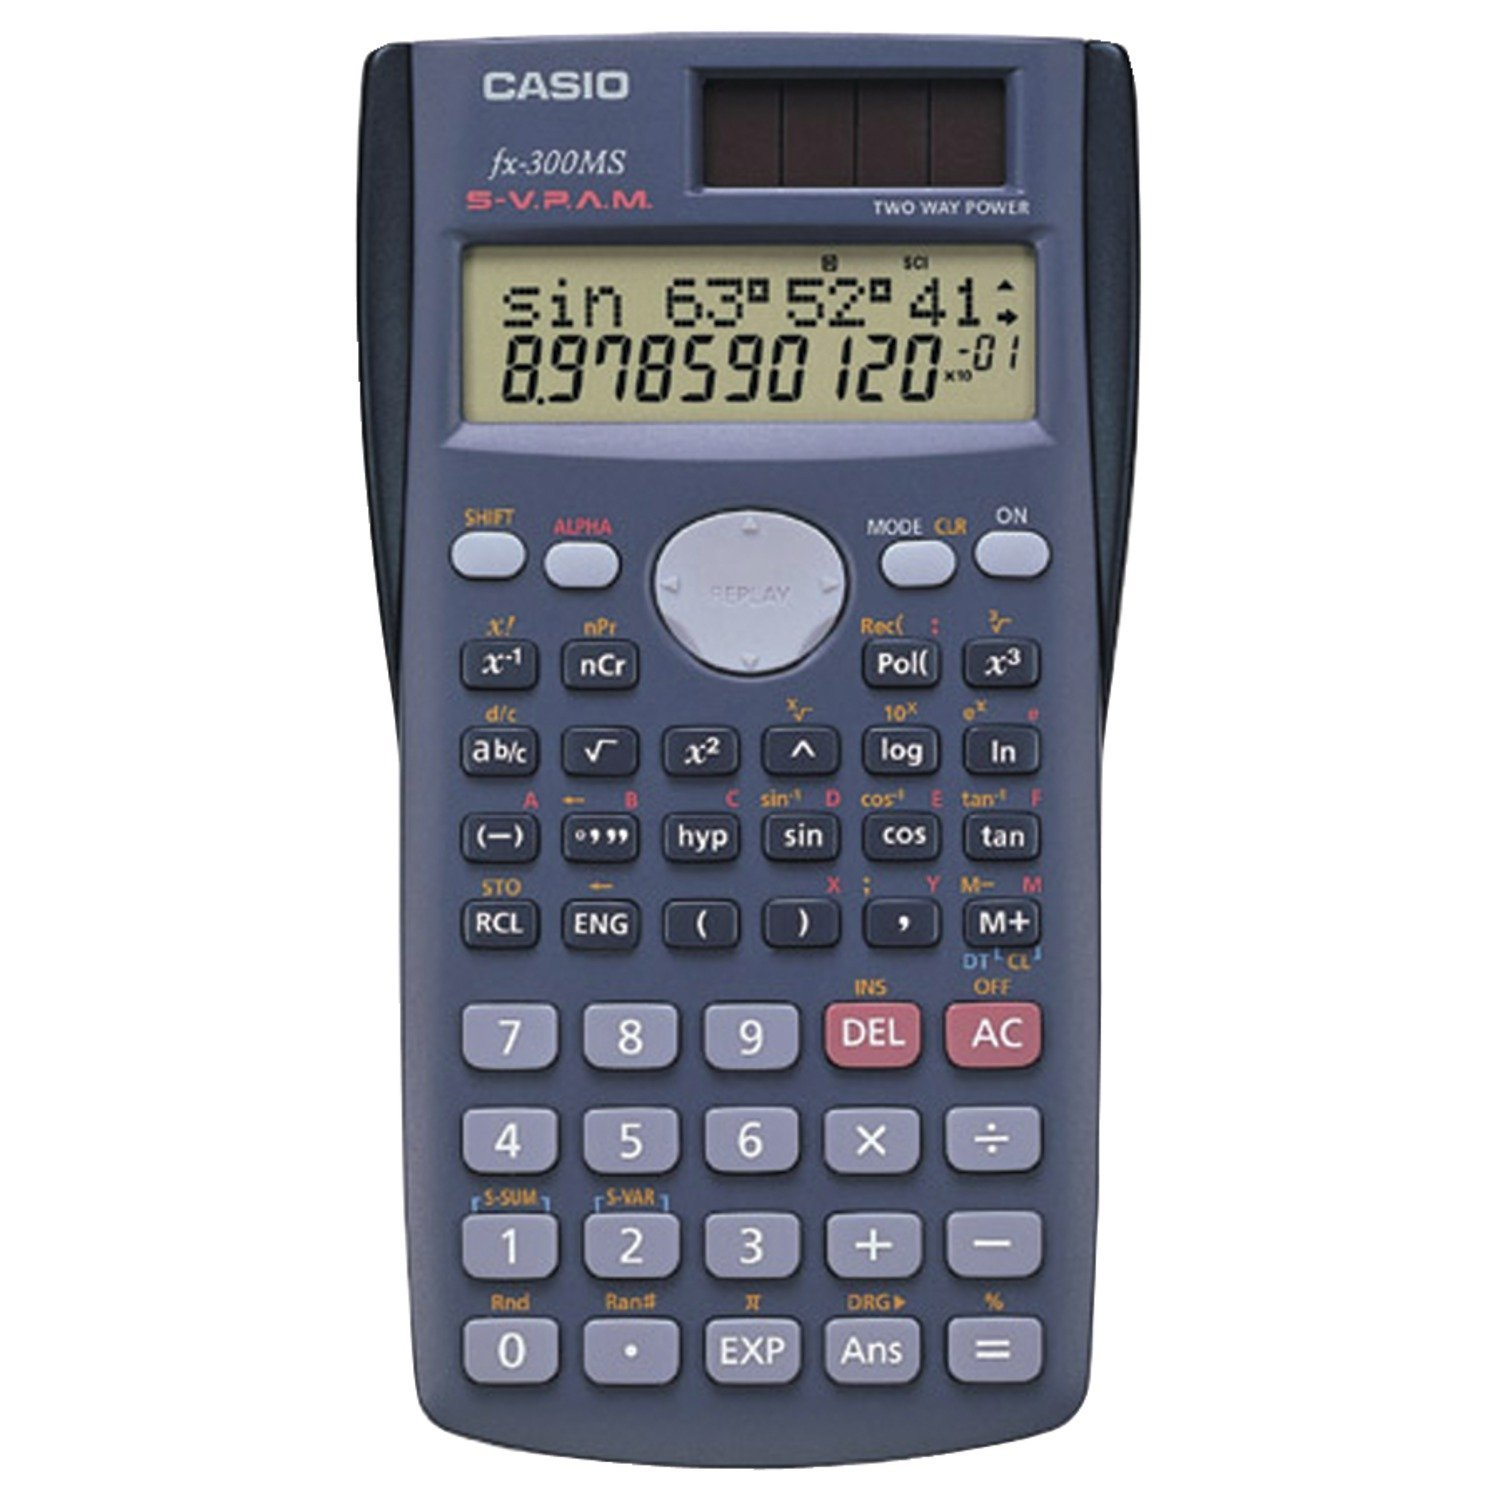 FX-300MS Scientific Calculator 1035B002, Power Source: Battery/Solar| Display Screen Type: LCD| Number of Display Digits: 10| Number of Display Lines: 2|.., By Casio